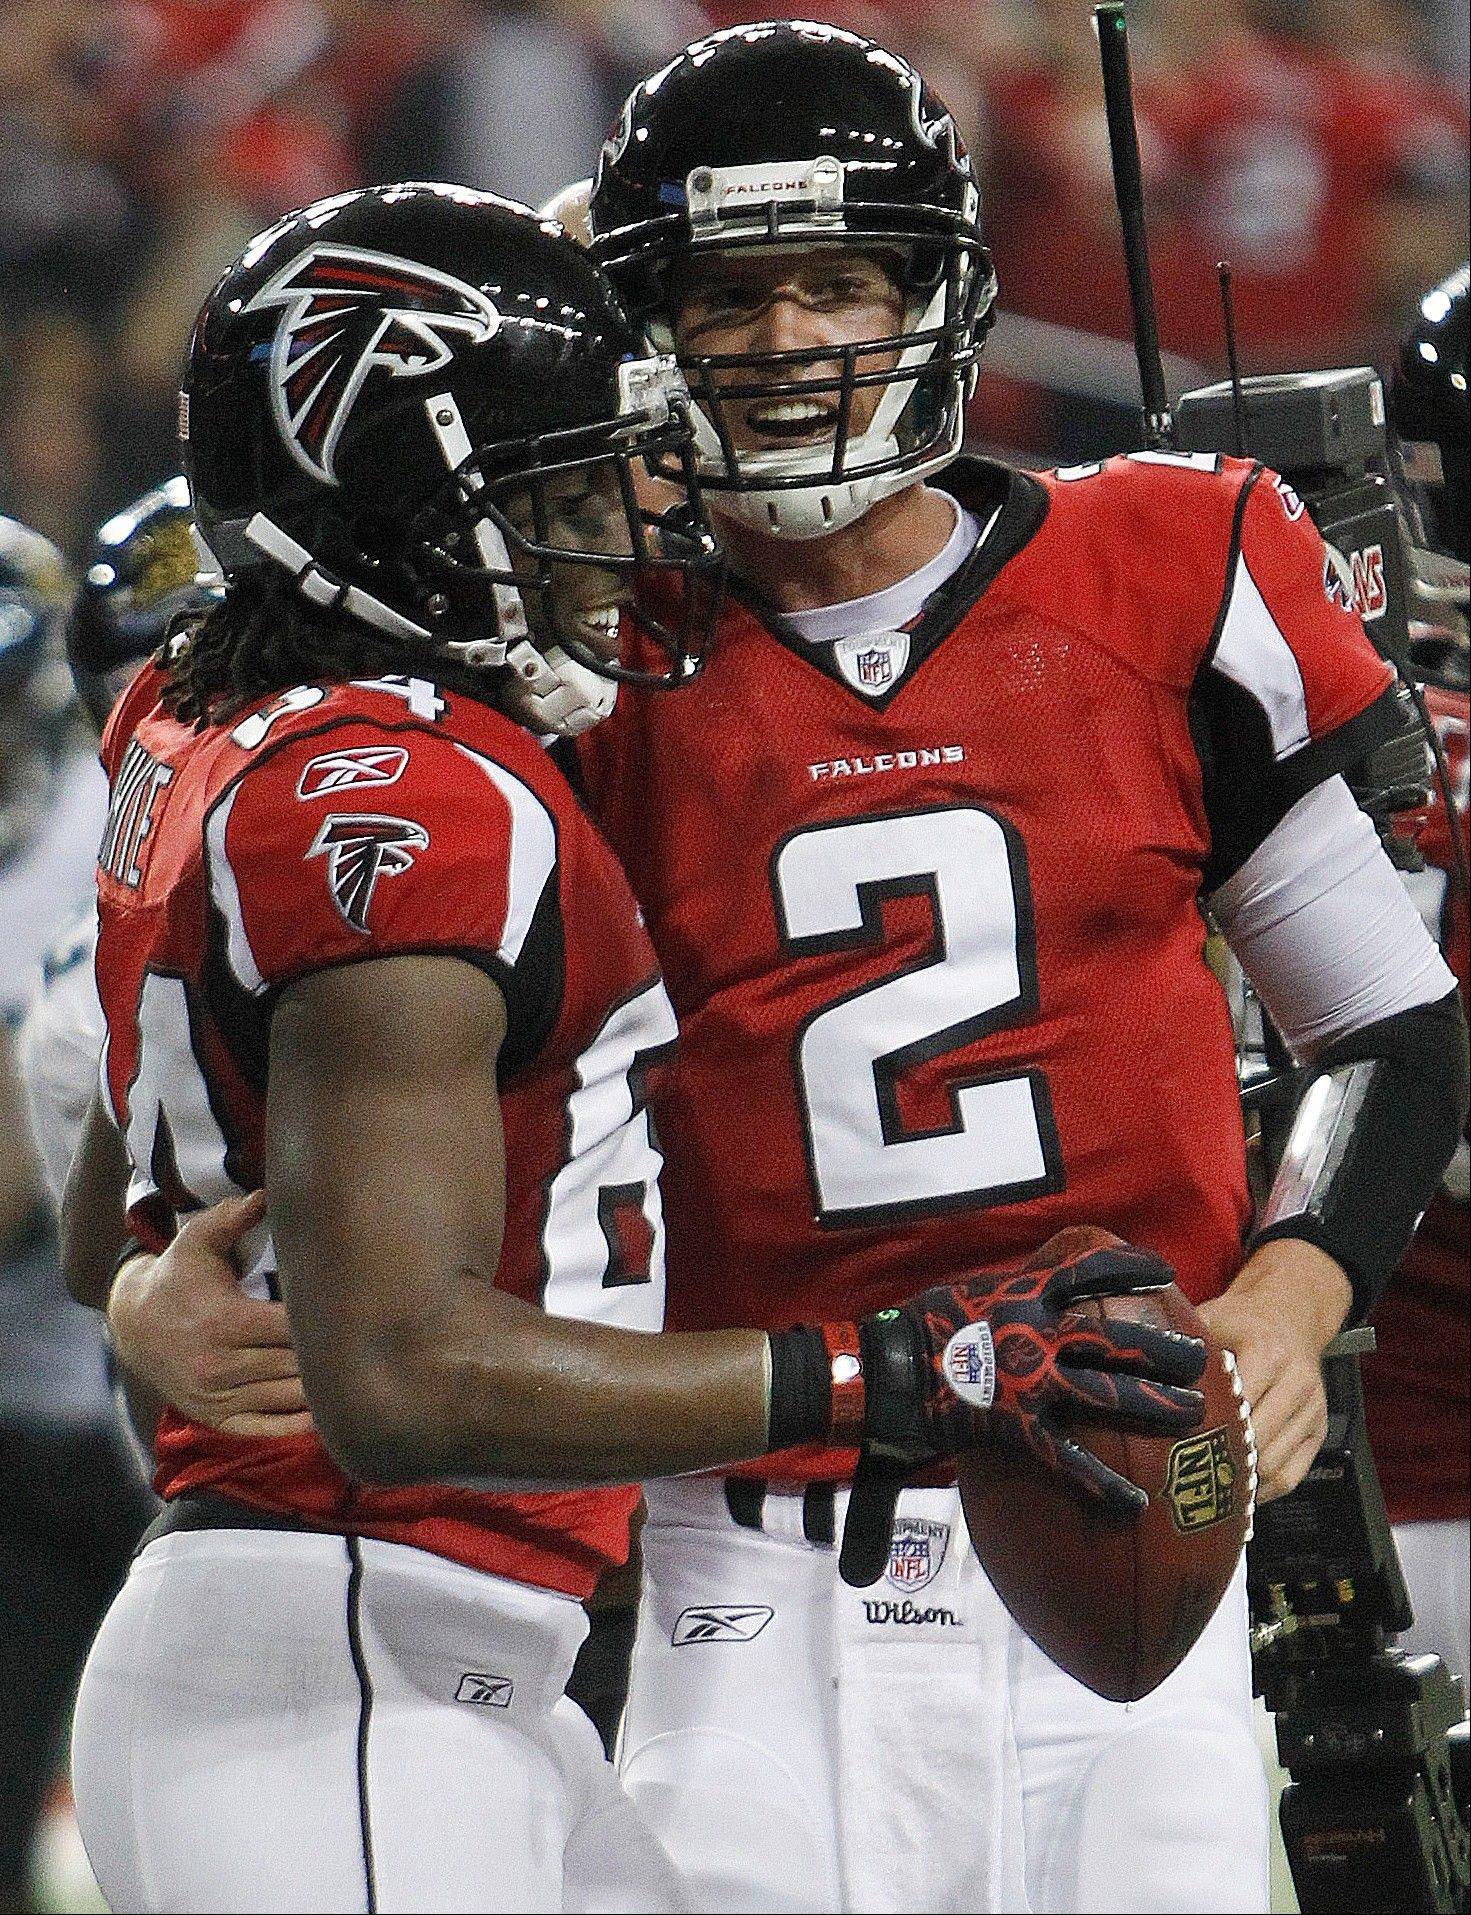 Atlanta quarterback Matt Ryan celebrates with Roddy White after 1 of White's 2 TD catches last Thursday against Jacksonville. Ryan has 7 TD passes the last two weeks and is a fantastic play this week at New Orleans.